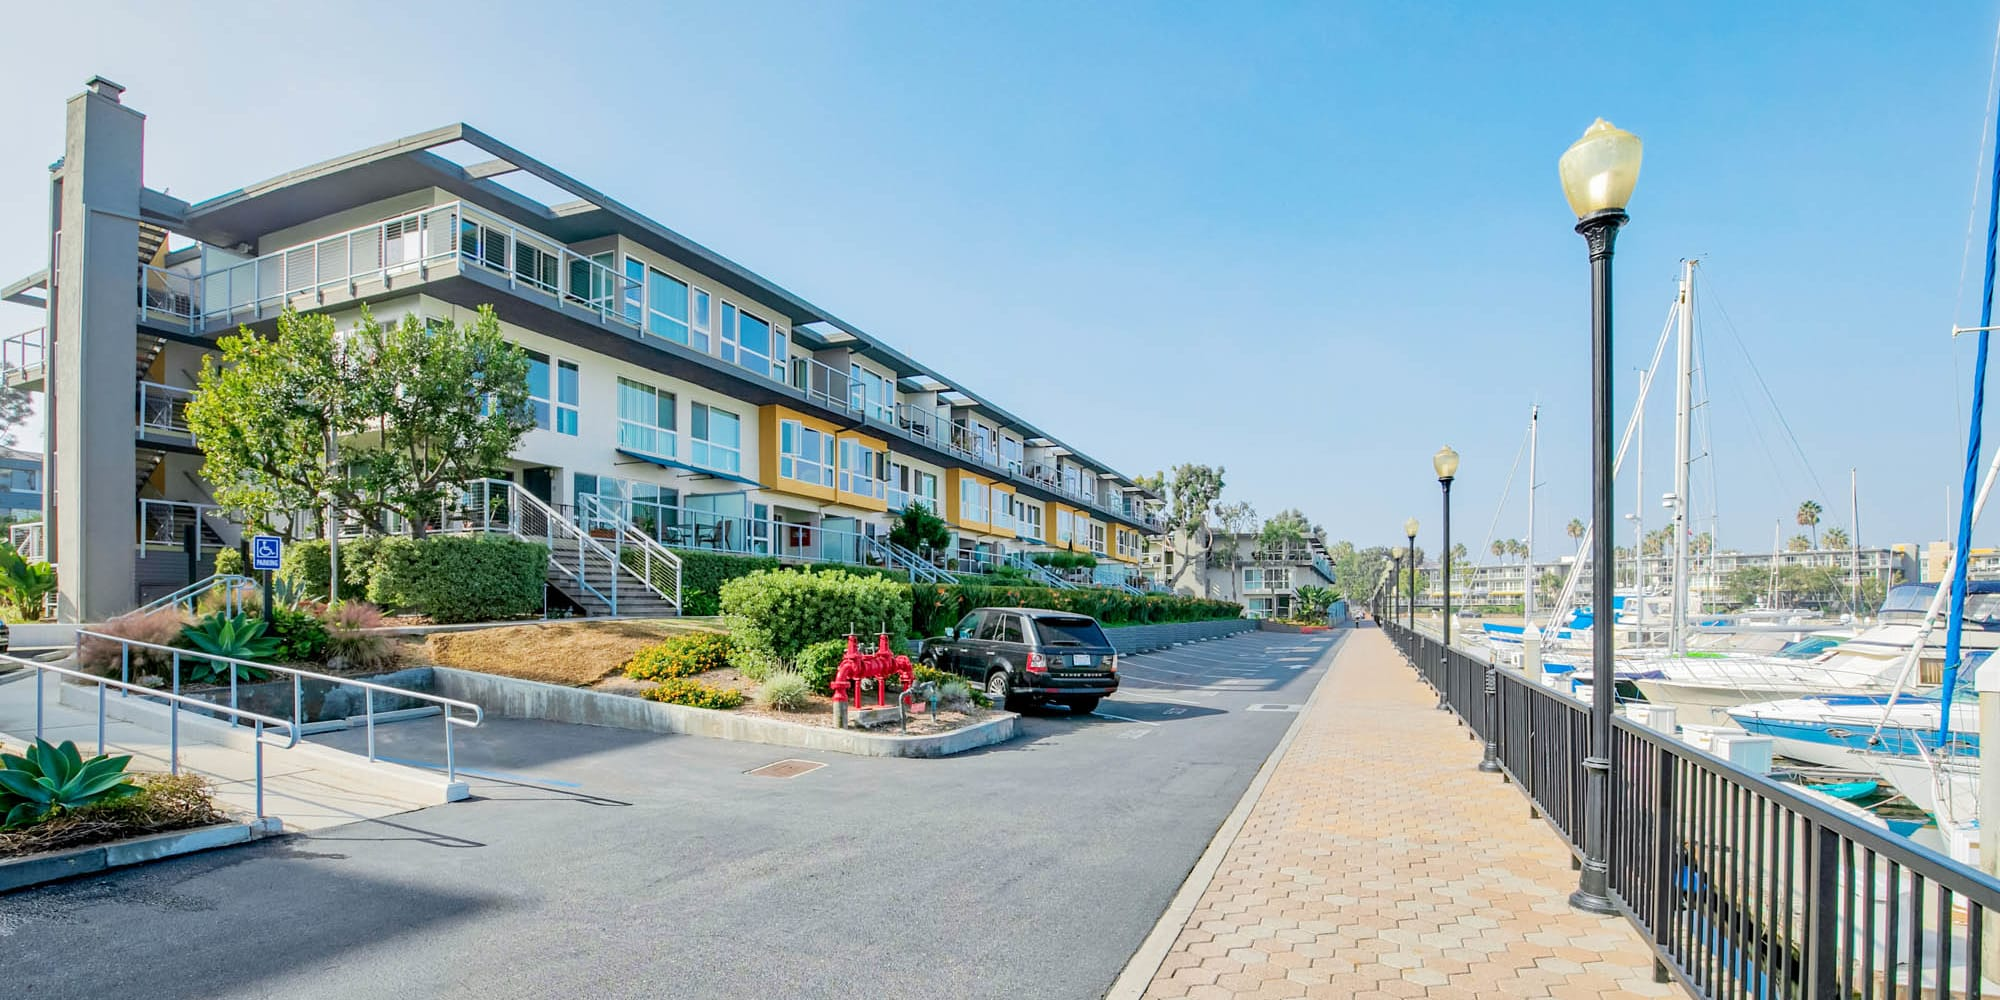 Paved drive between resident buildings and the boardwalk overlooking the marina at The Tides at Marina Harbor in Marina Del Rey, California